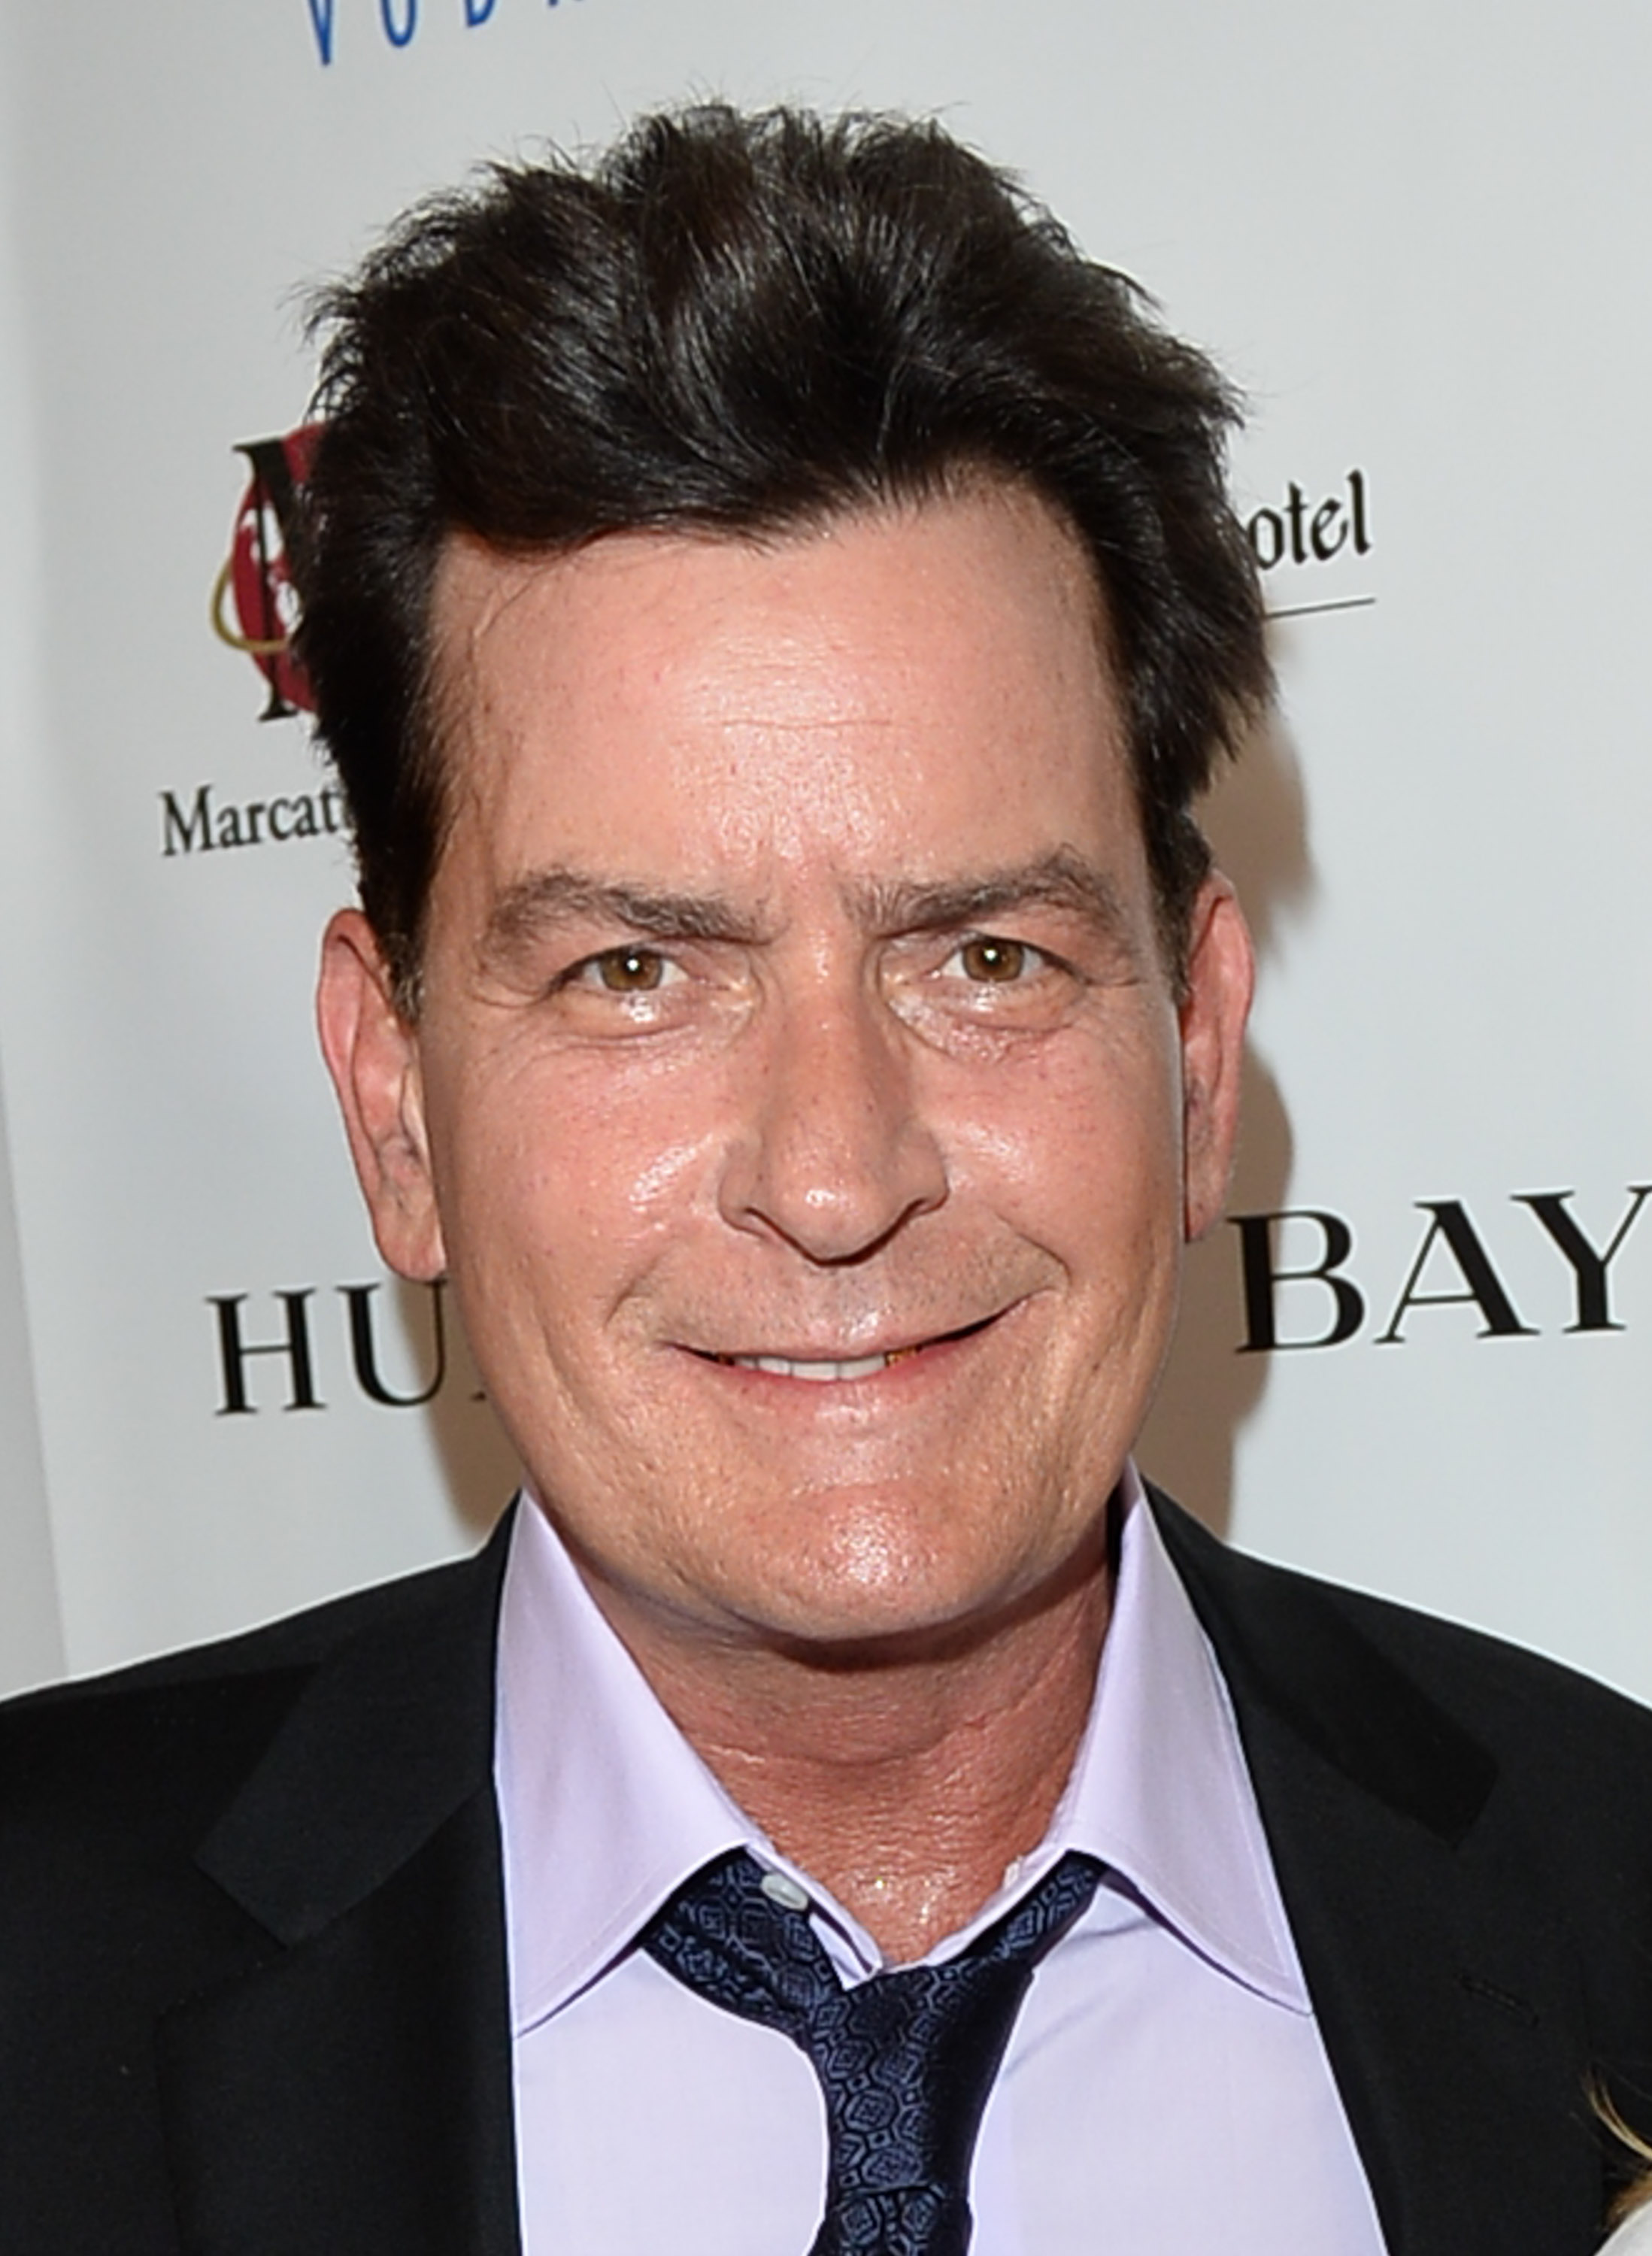 Actor Charlie Sheen attends the Joe Carter Classic Charity Golf Tournament after-party at Shangri-La Hotel on June 26, 2014 in Toronto.